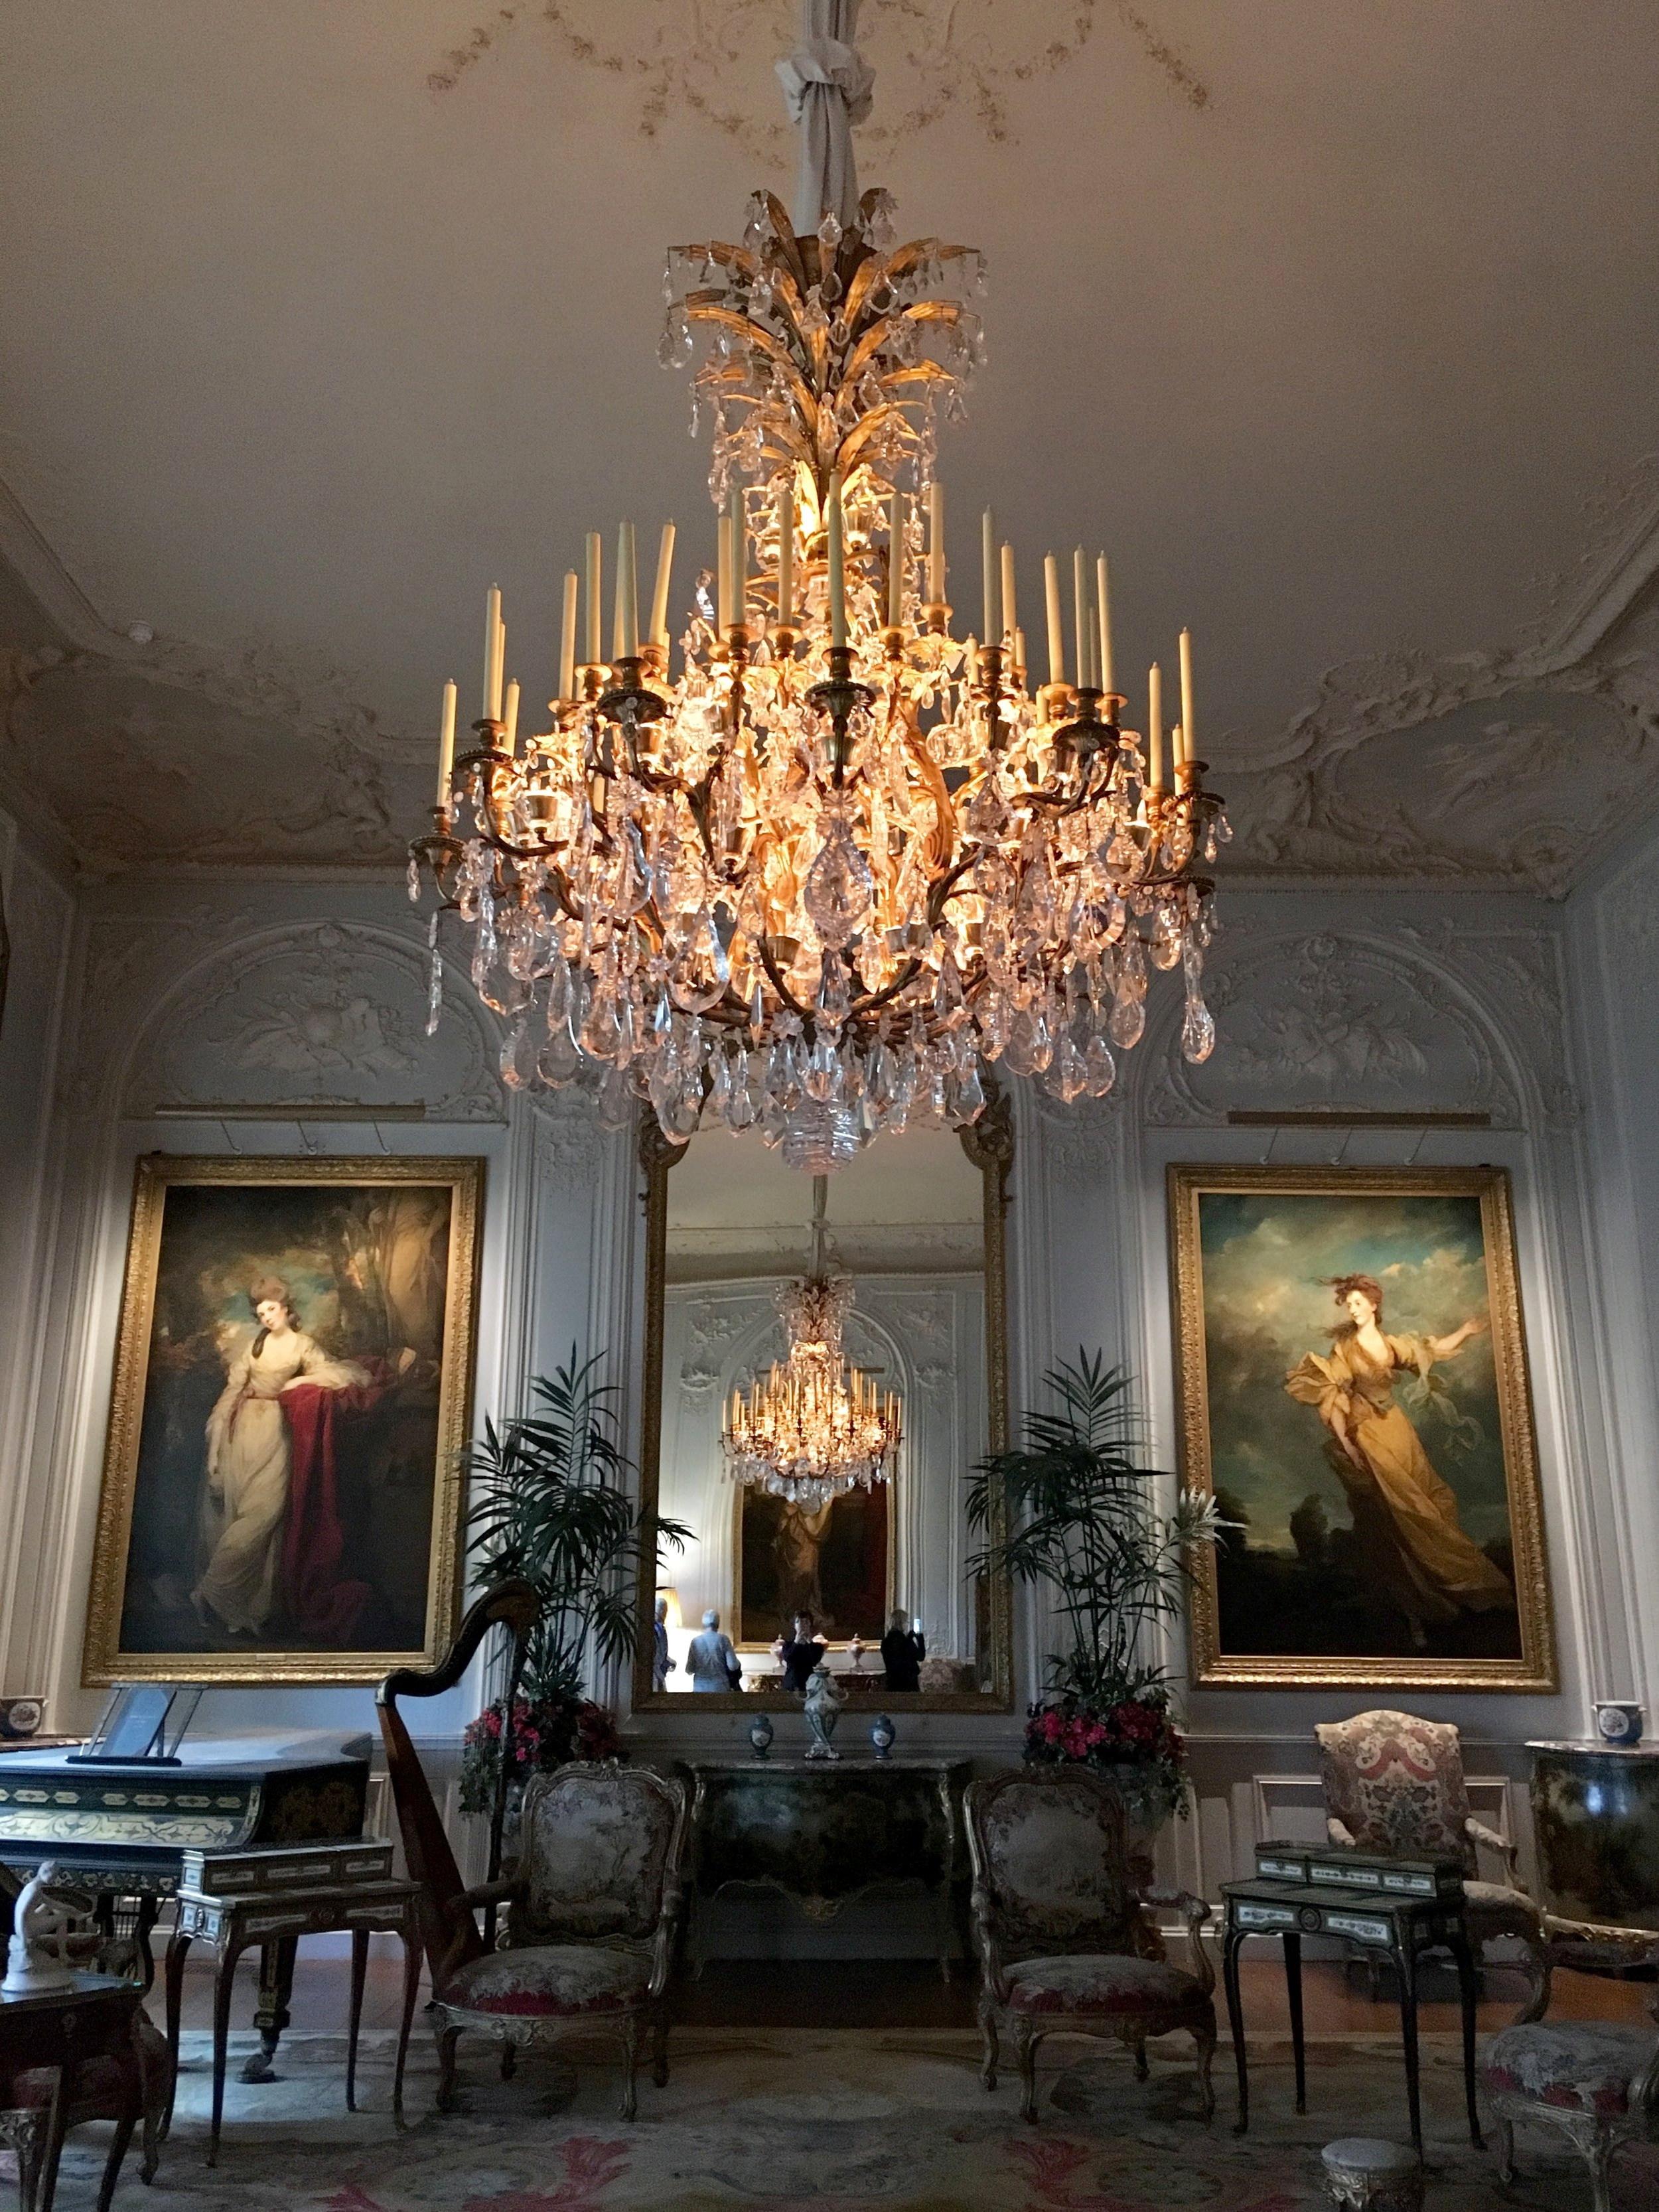 Baron Rothschild had great love for portraits of beautiful women, as well as chandeliers. © Eileen Hsieh / Follow That Bug